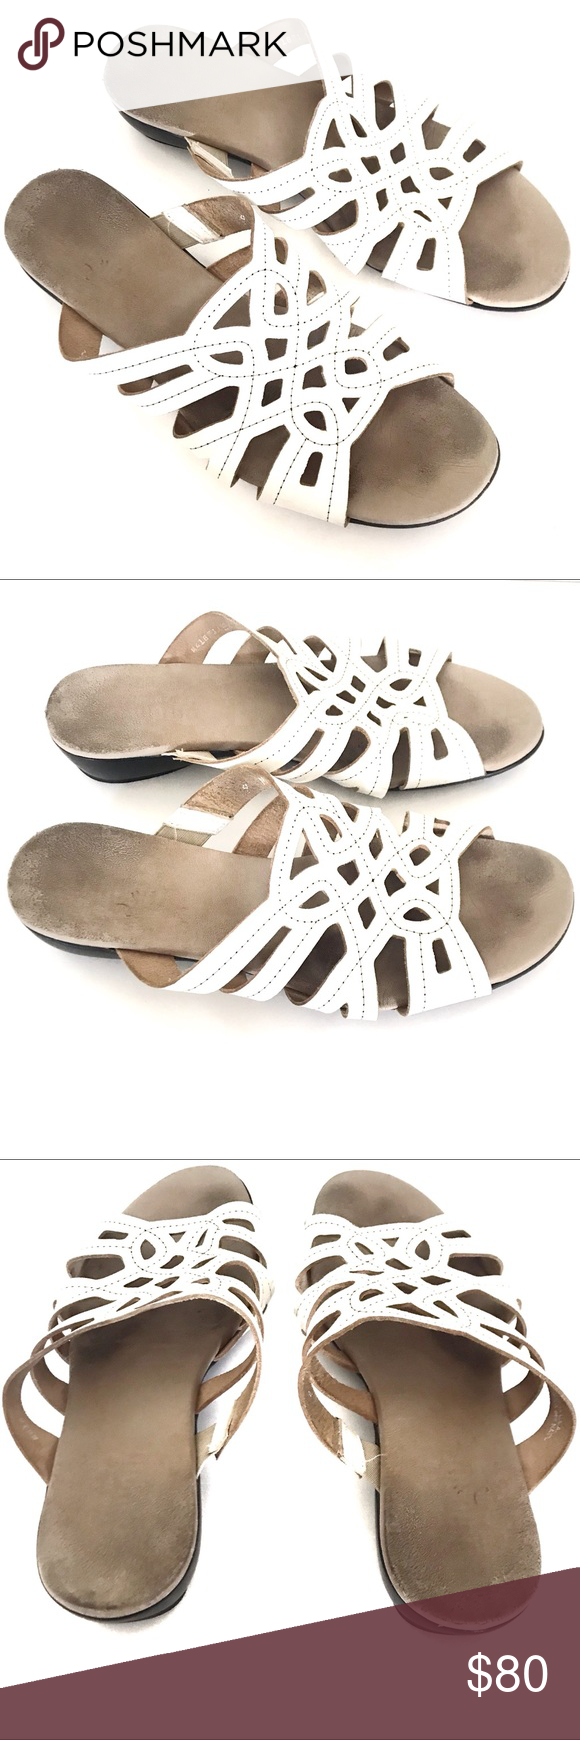 MUNRO Leather Perforated White Slide Sandal Size 9 Get your